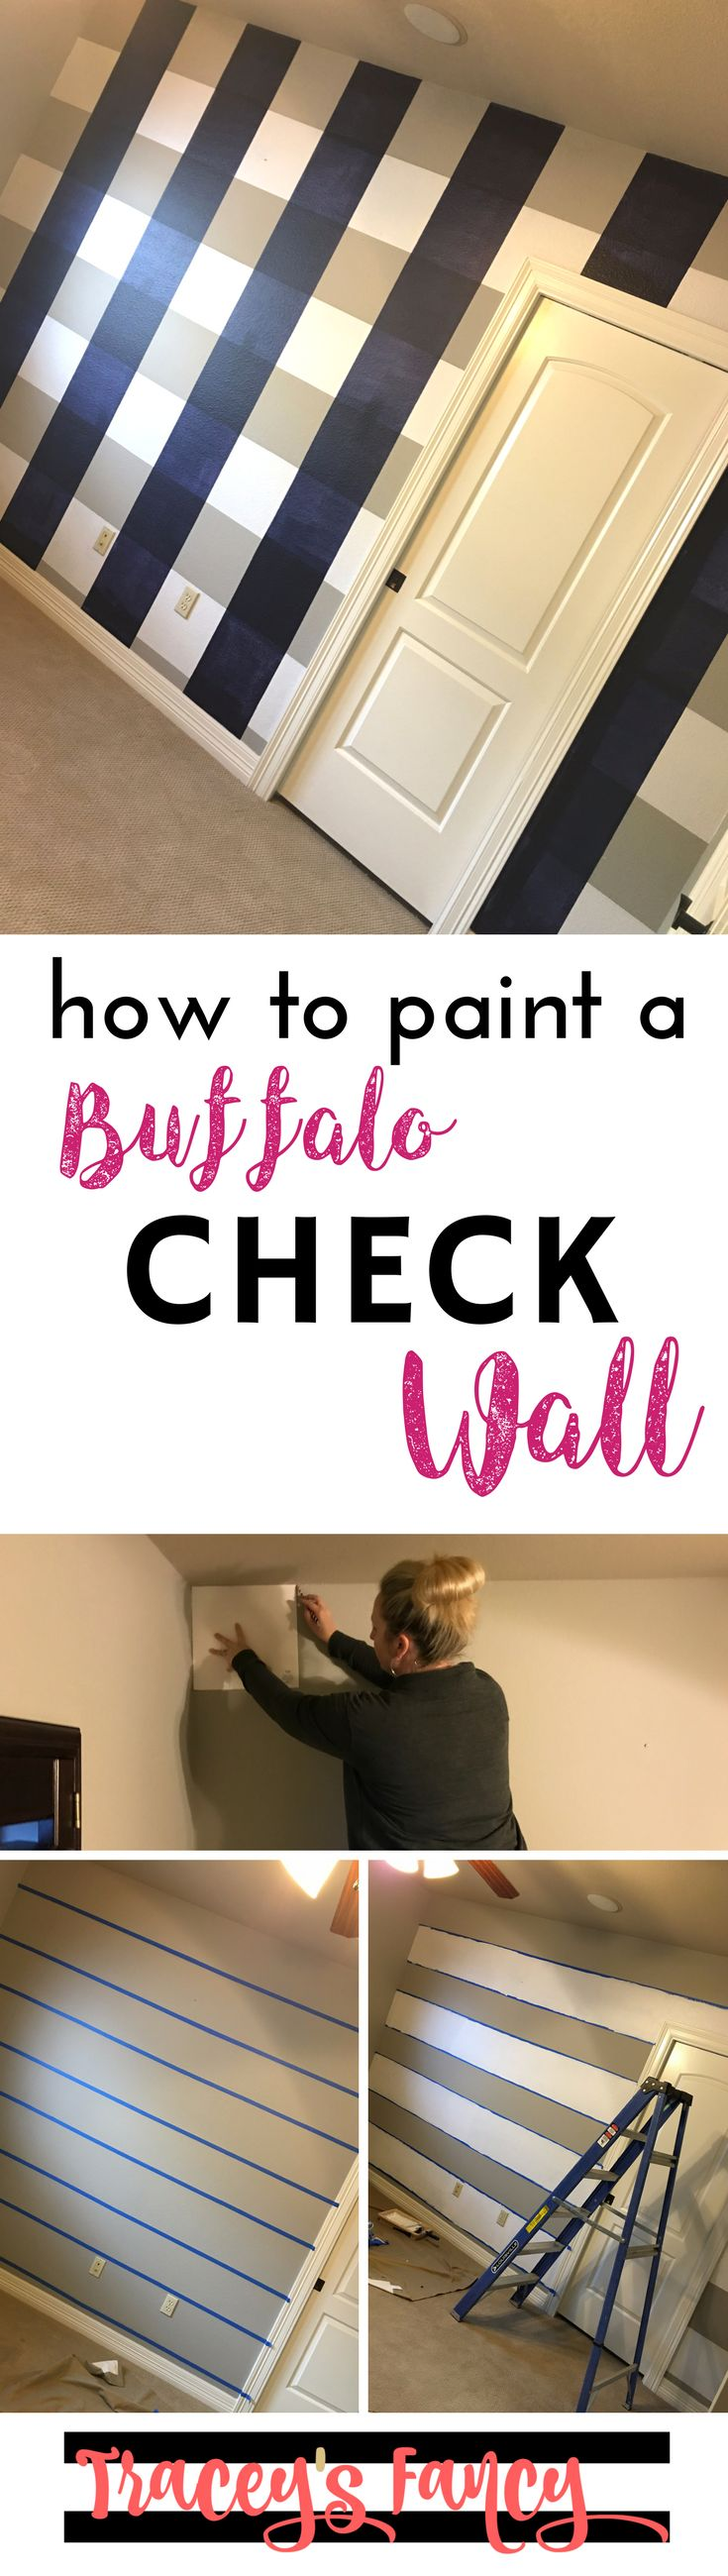 17 Best ideas about Wall Paint Patterns on Pinterest